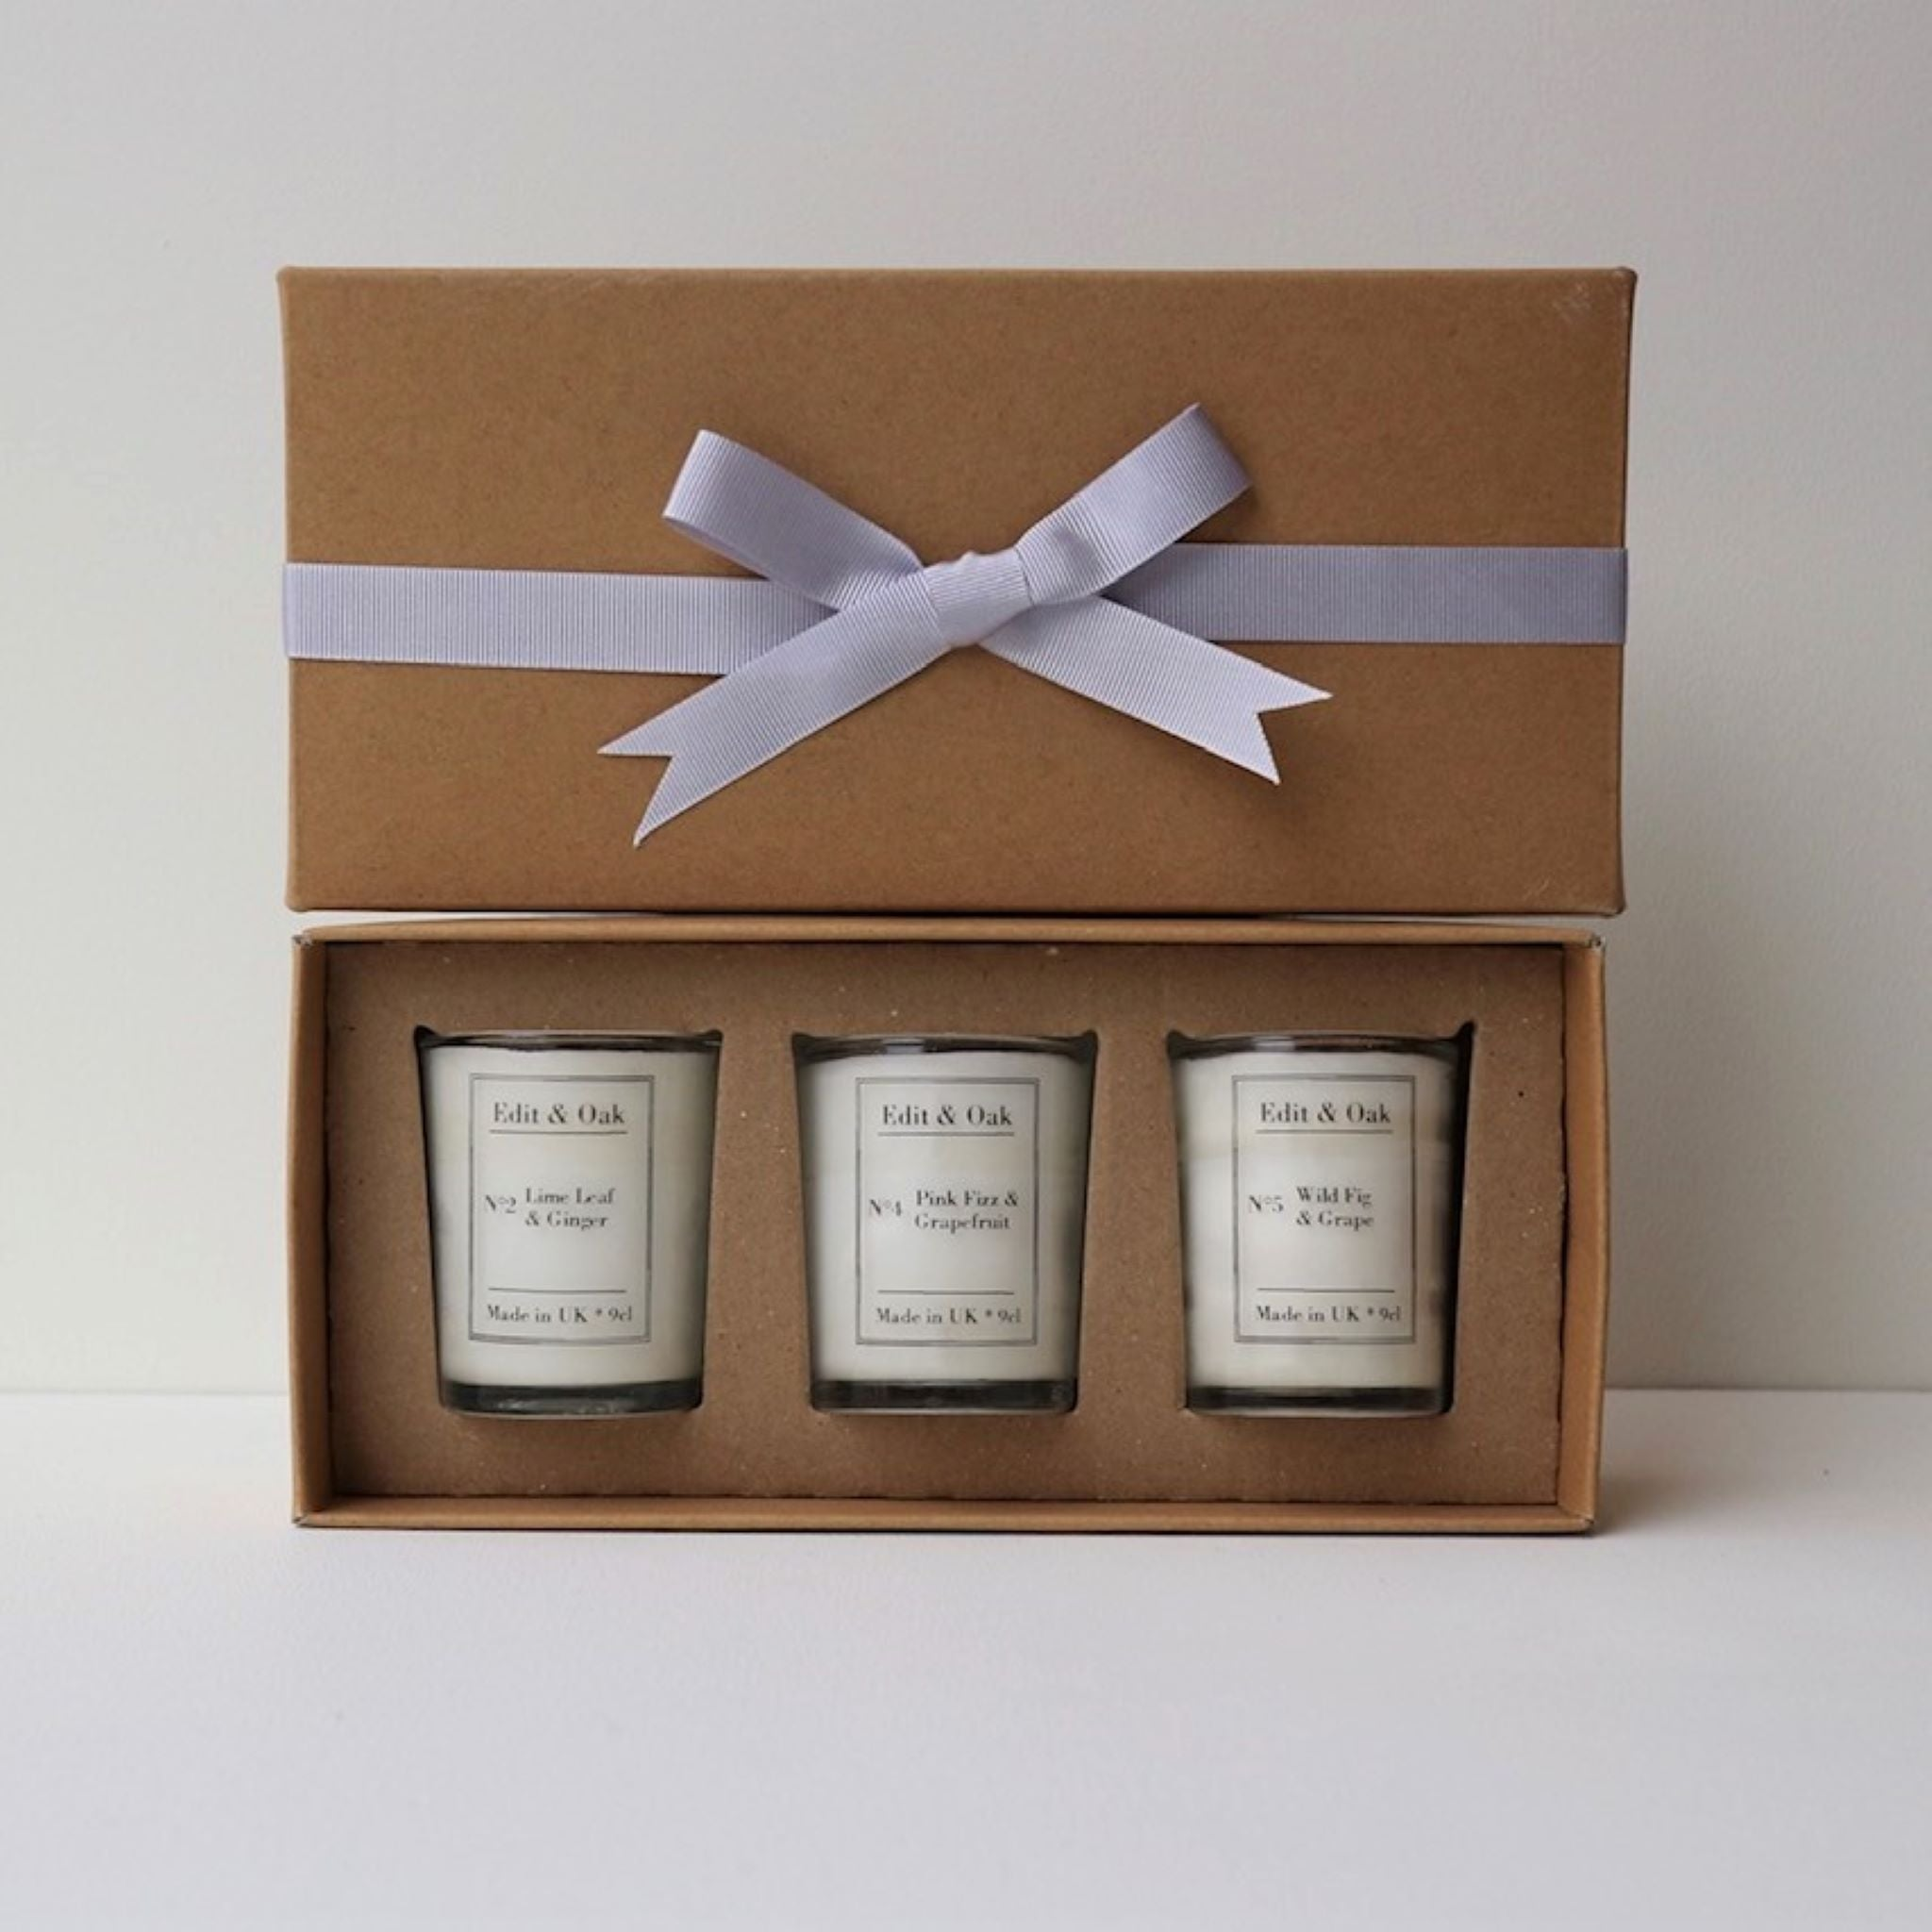 Mixed Scent Edit & Oak Candle Gift Box